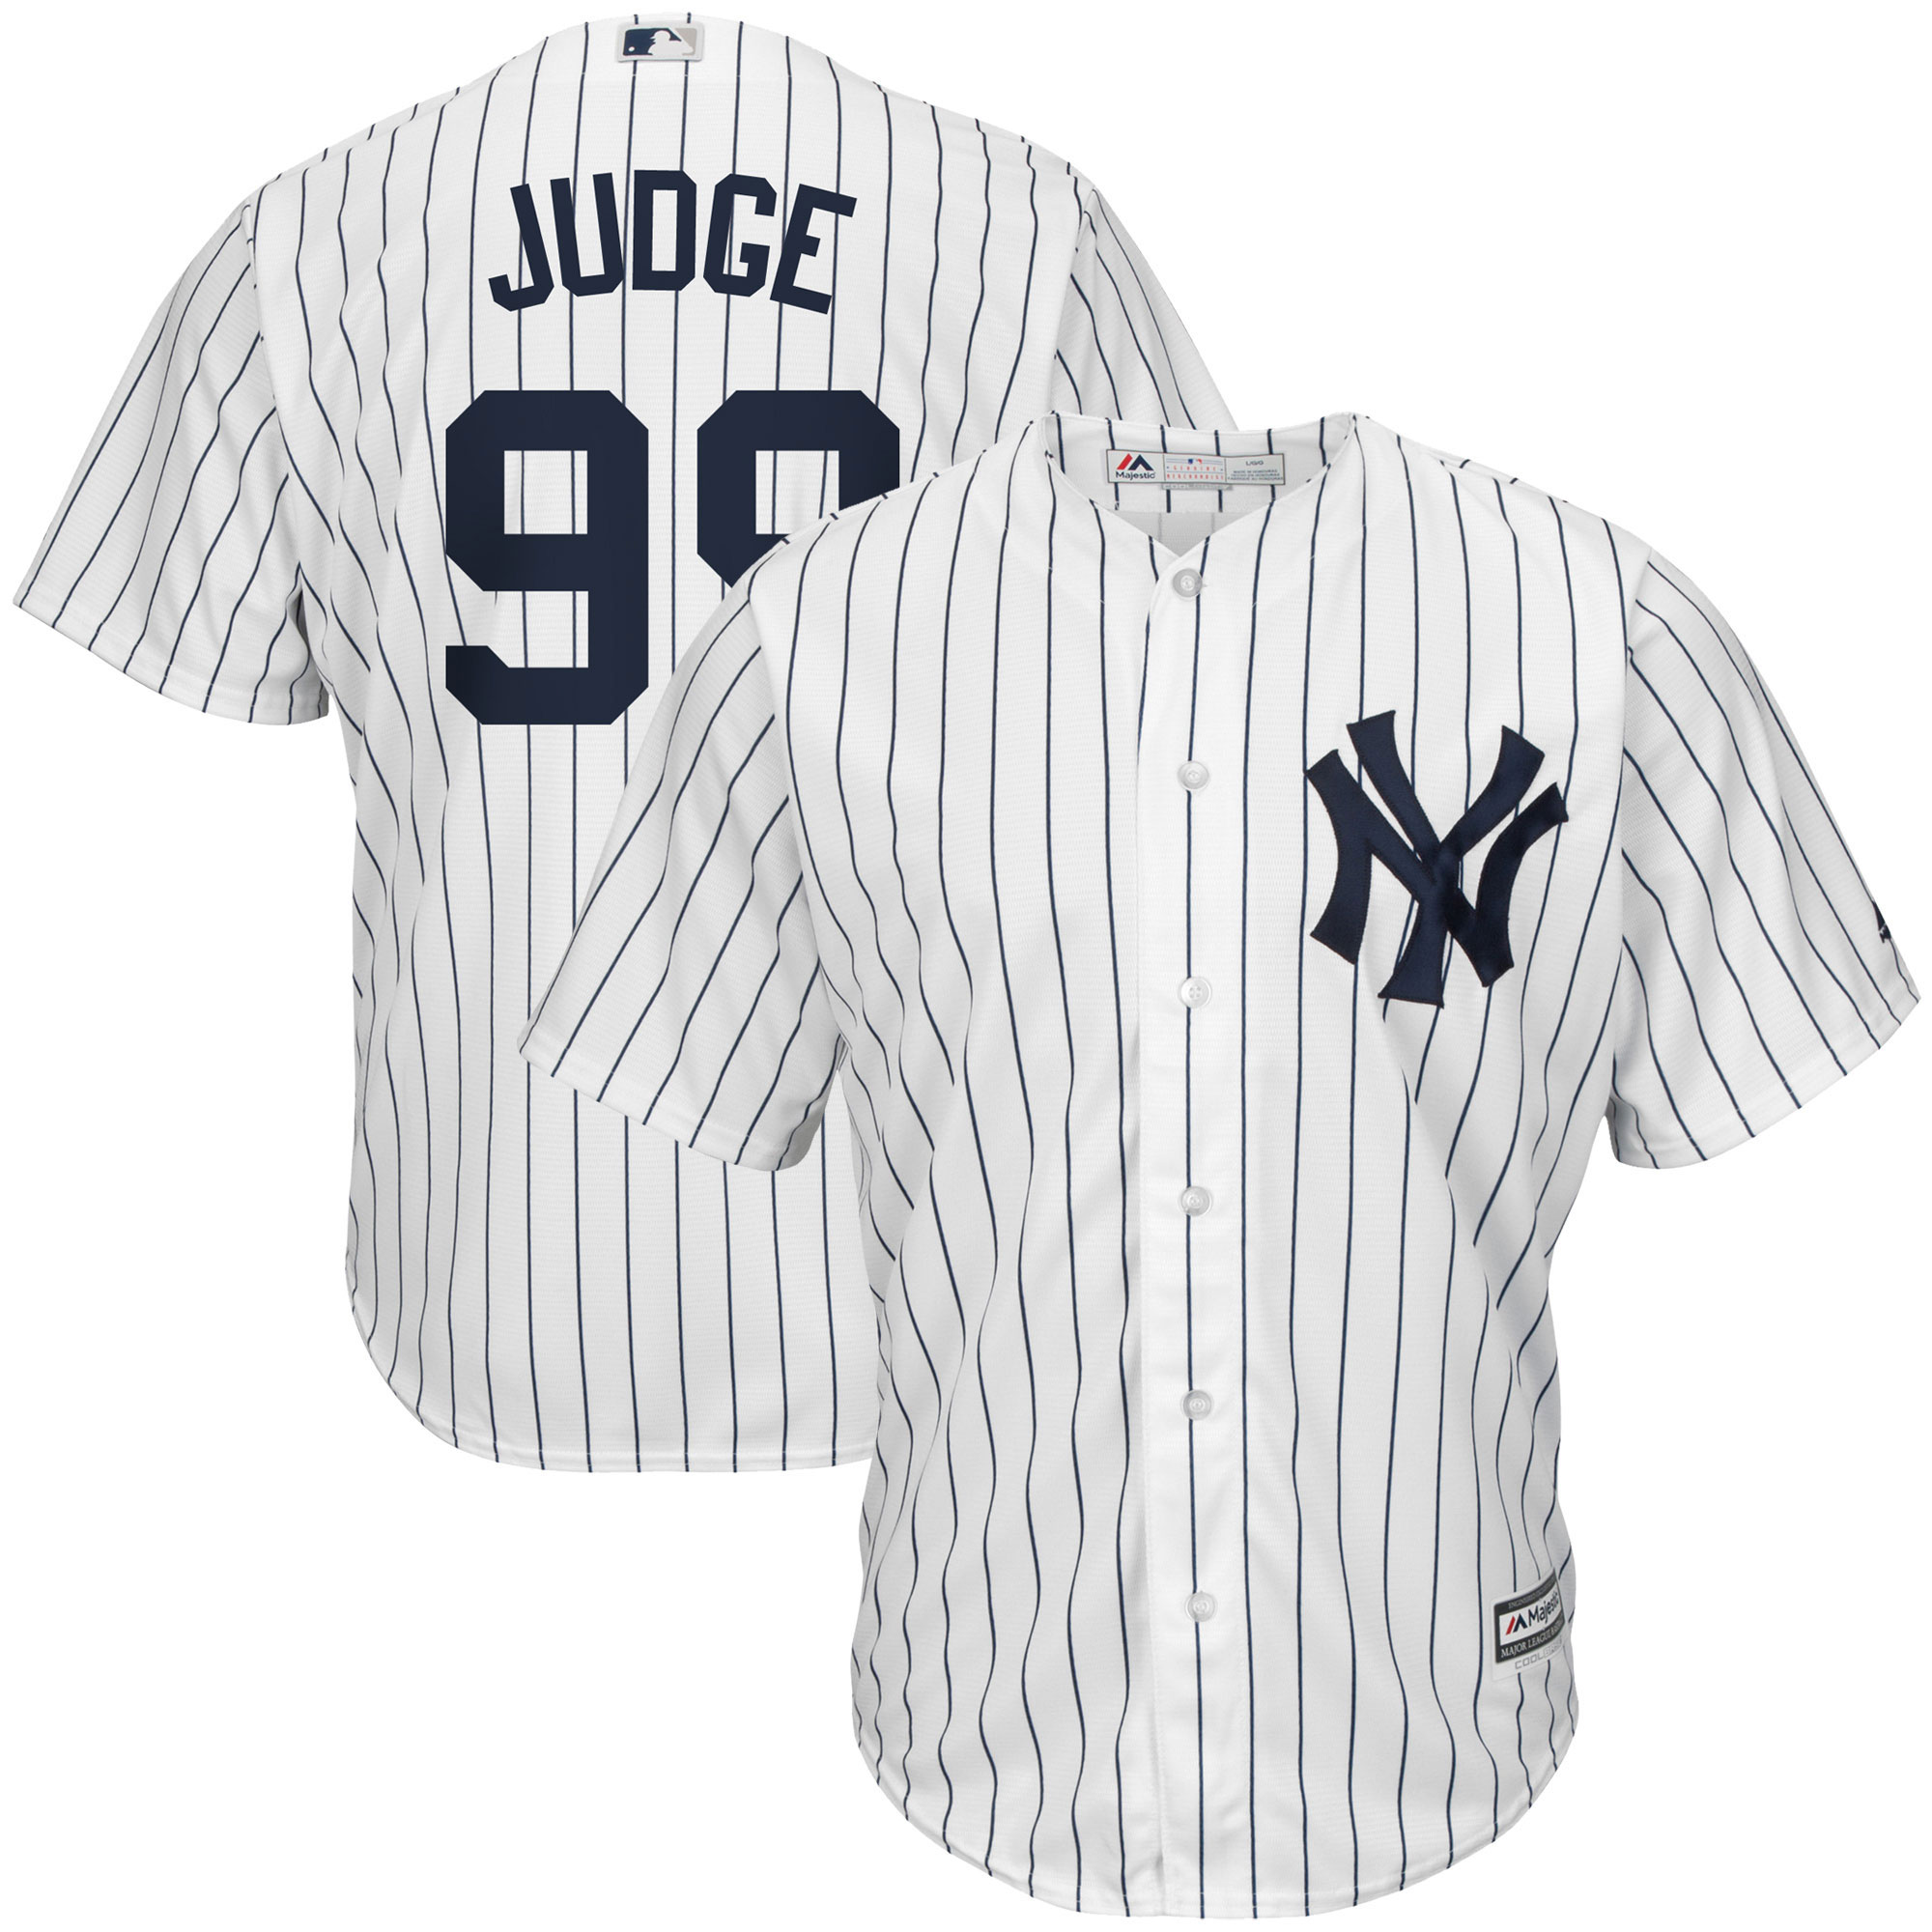 Aaron Judge New York Yankees Majestic Home Cool Base Player Jersey - White/Navy